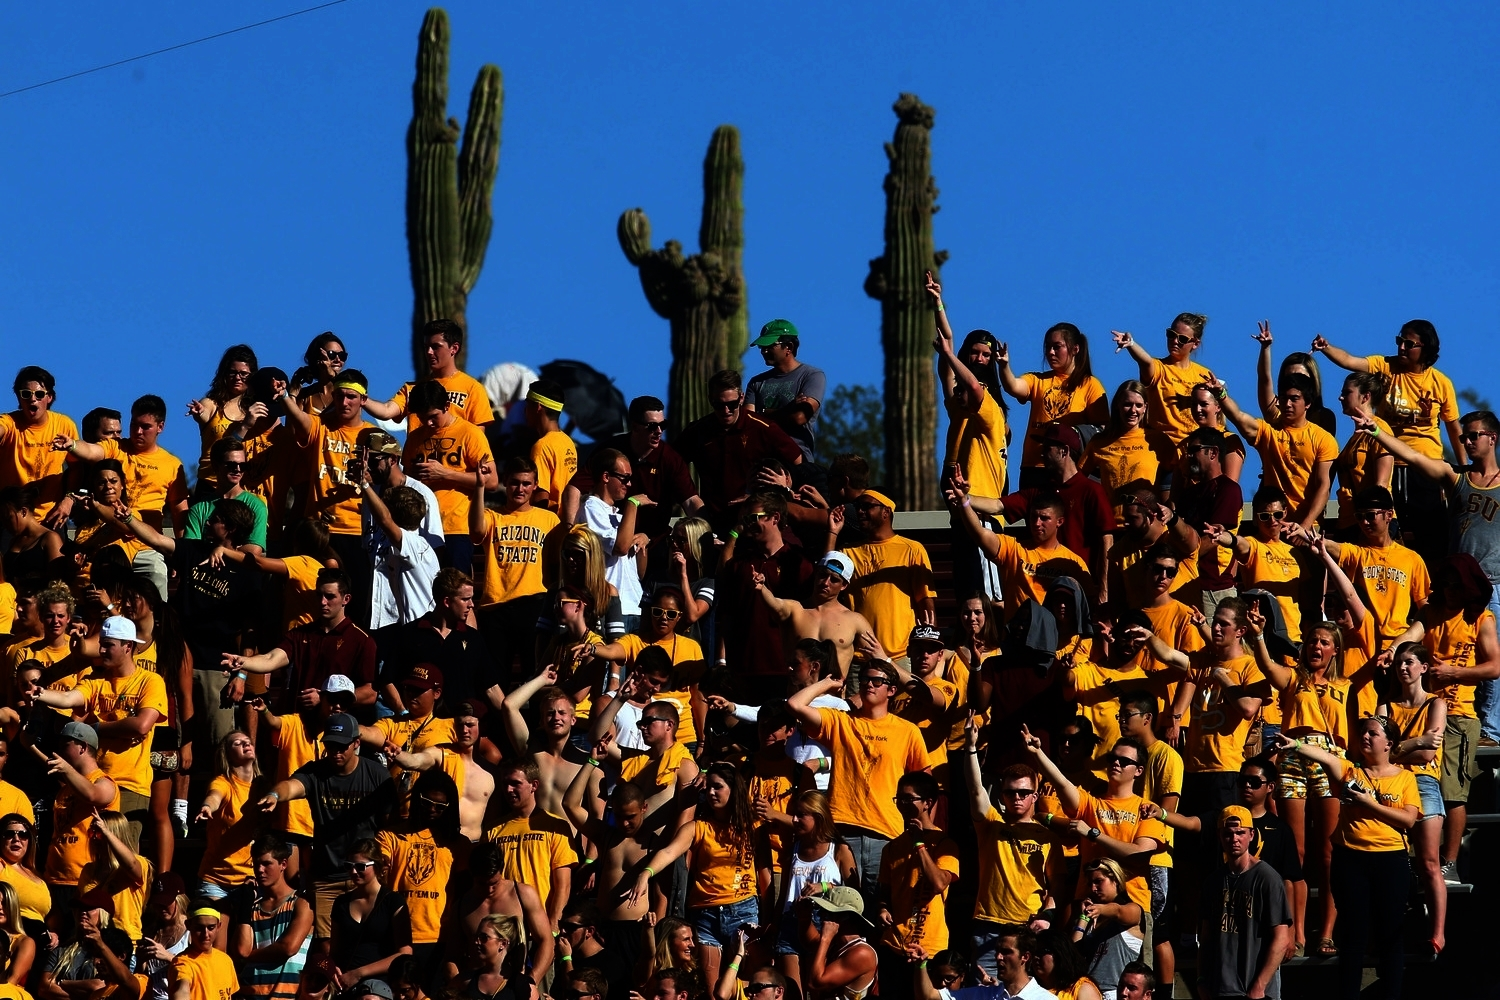 Are those cacti so high that they rise above the stadium seating, or did someone bring them to the game? Or, third possibility, were they brought to the game? Who brings cacti? ASU fans, that's who.